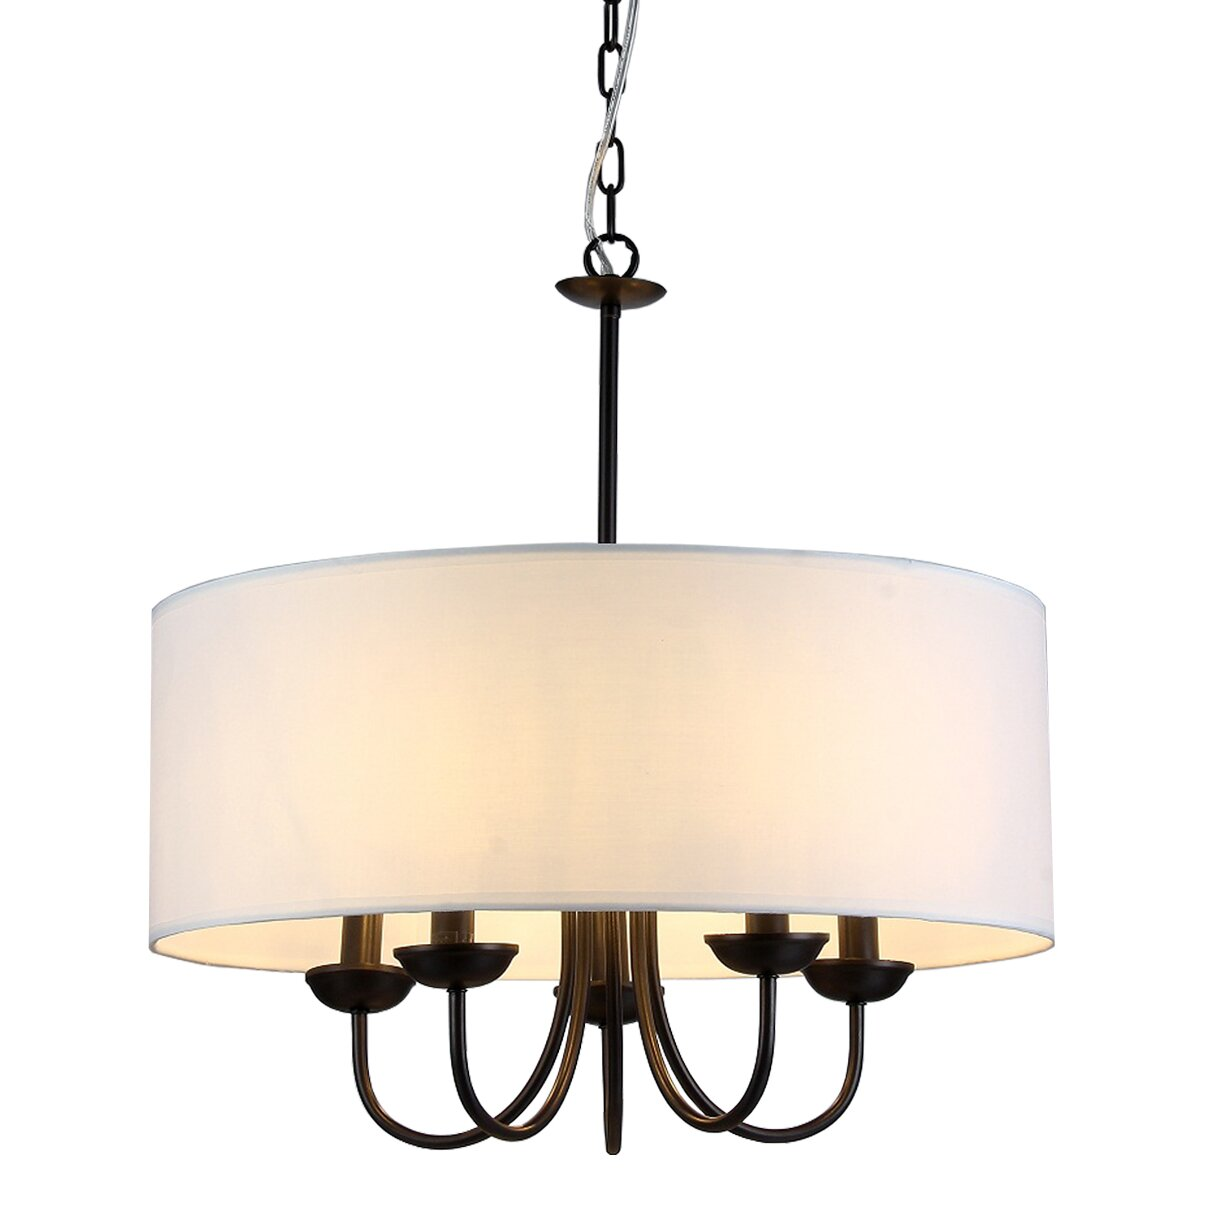 Warehouse of tiffany gwenevere 5 light drum chandelier wayfair - Lighting and chandeliers ...